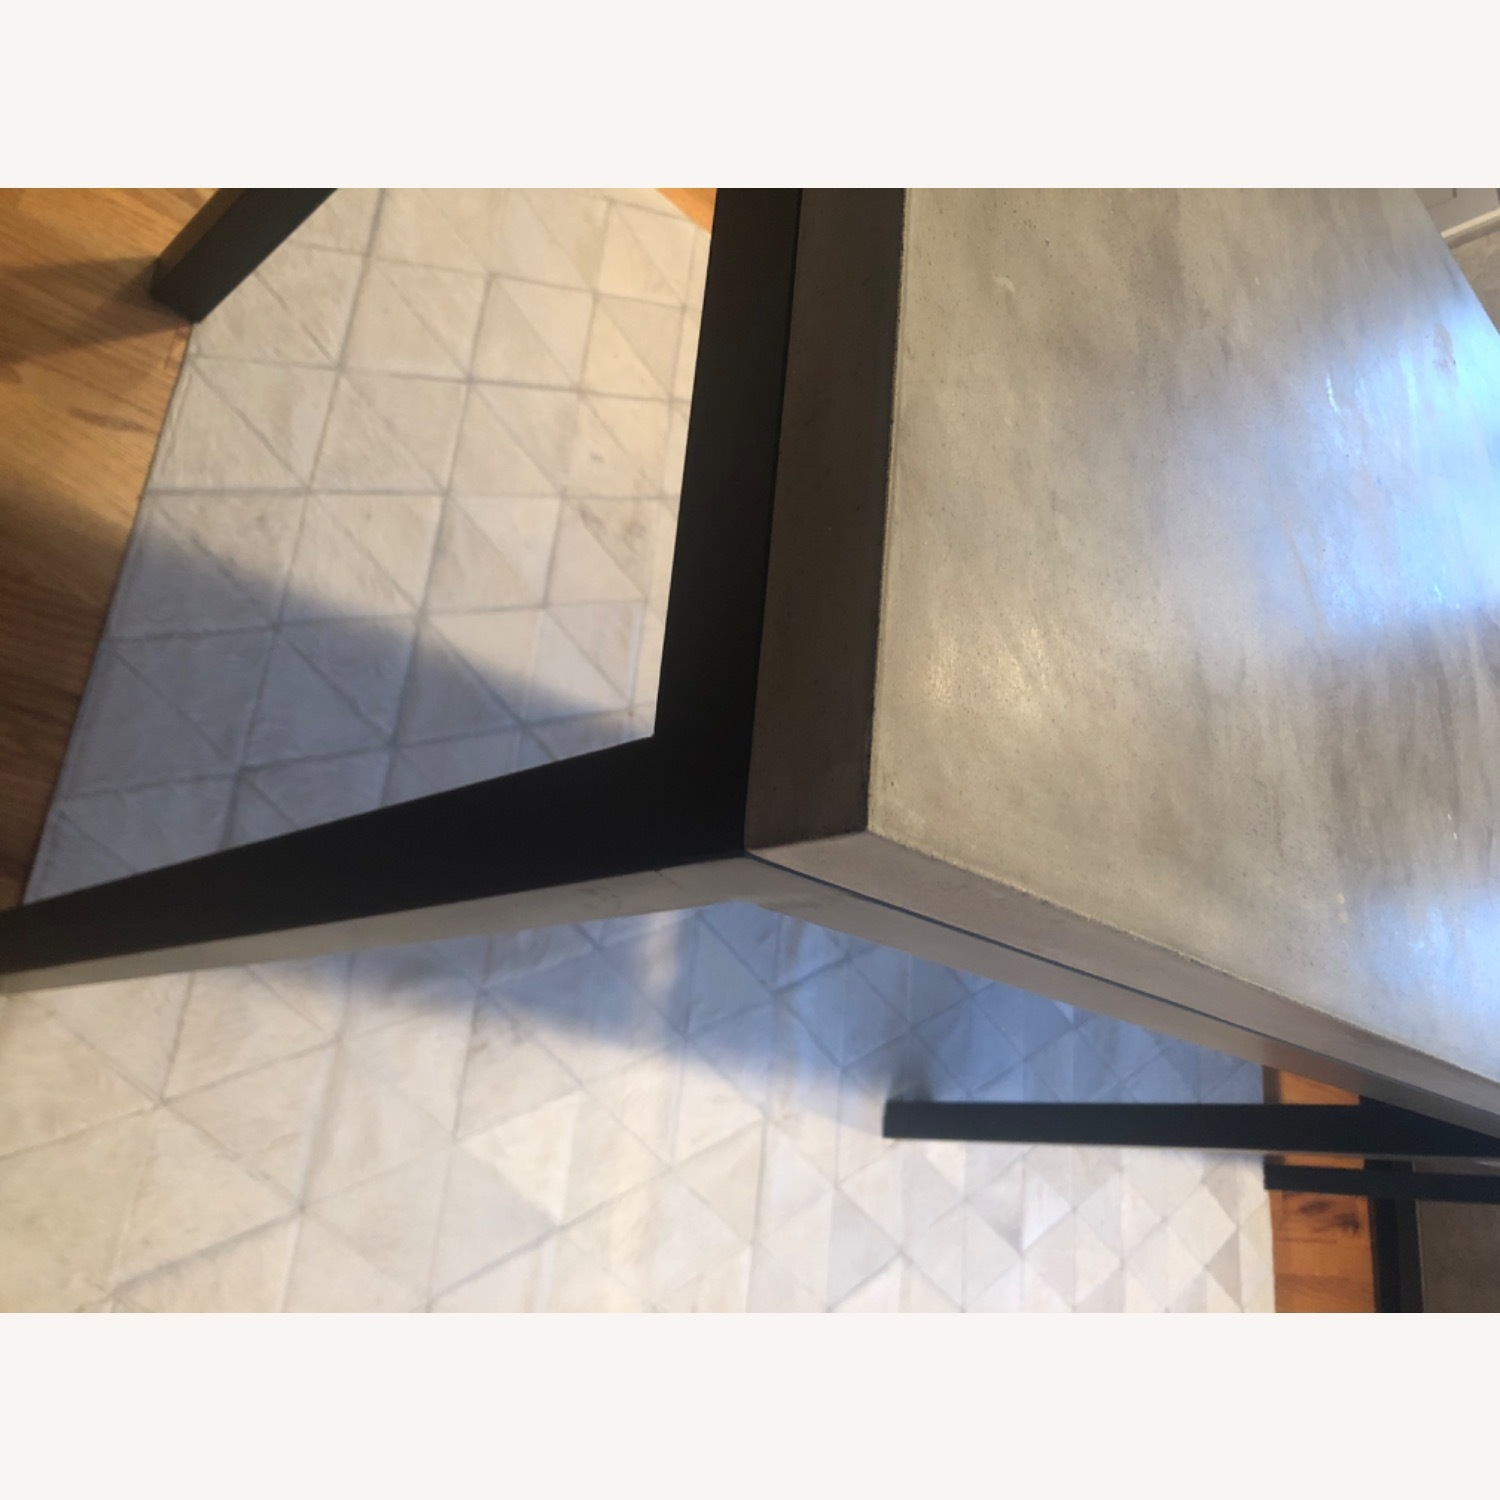 Crate & Barrel 2 Concrete Dining Tables - image-7